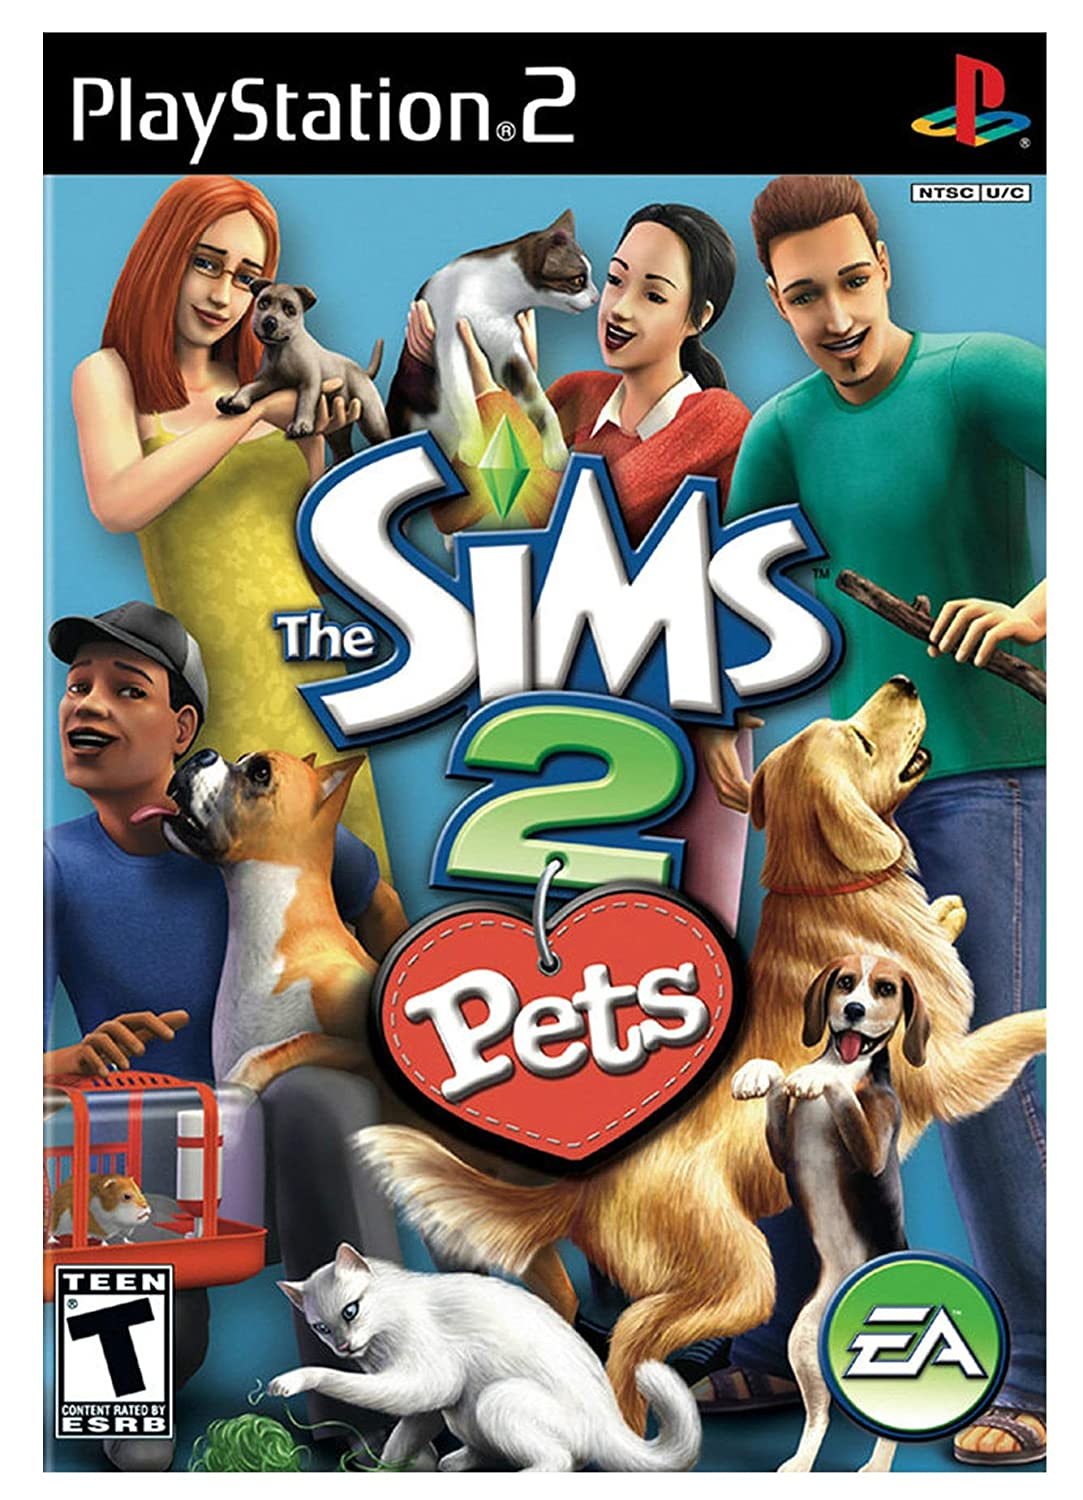 Amazon Com The Sims 2 Pets Playstation 2 Artist Not Provided Video Games